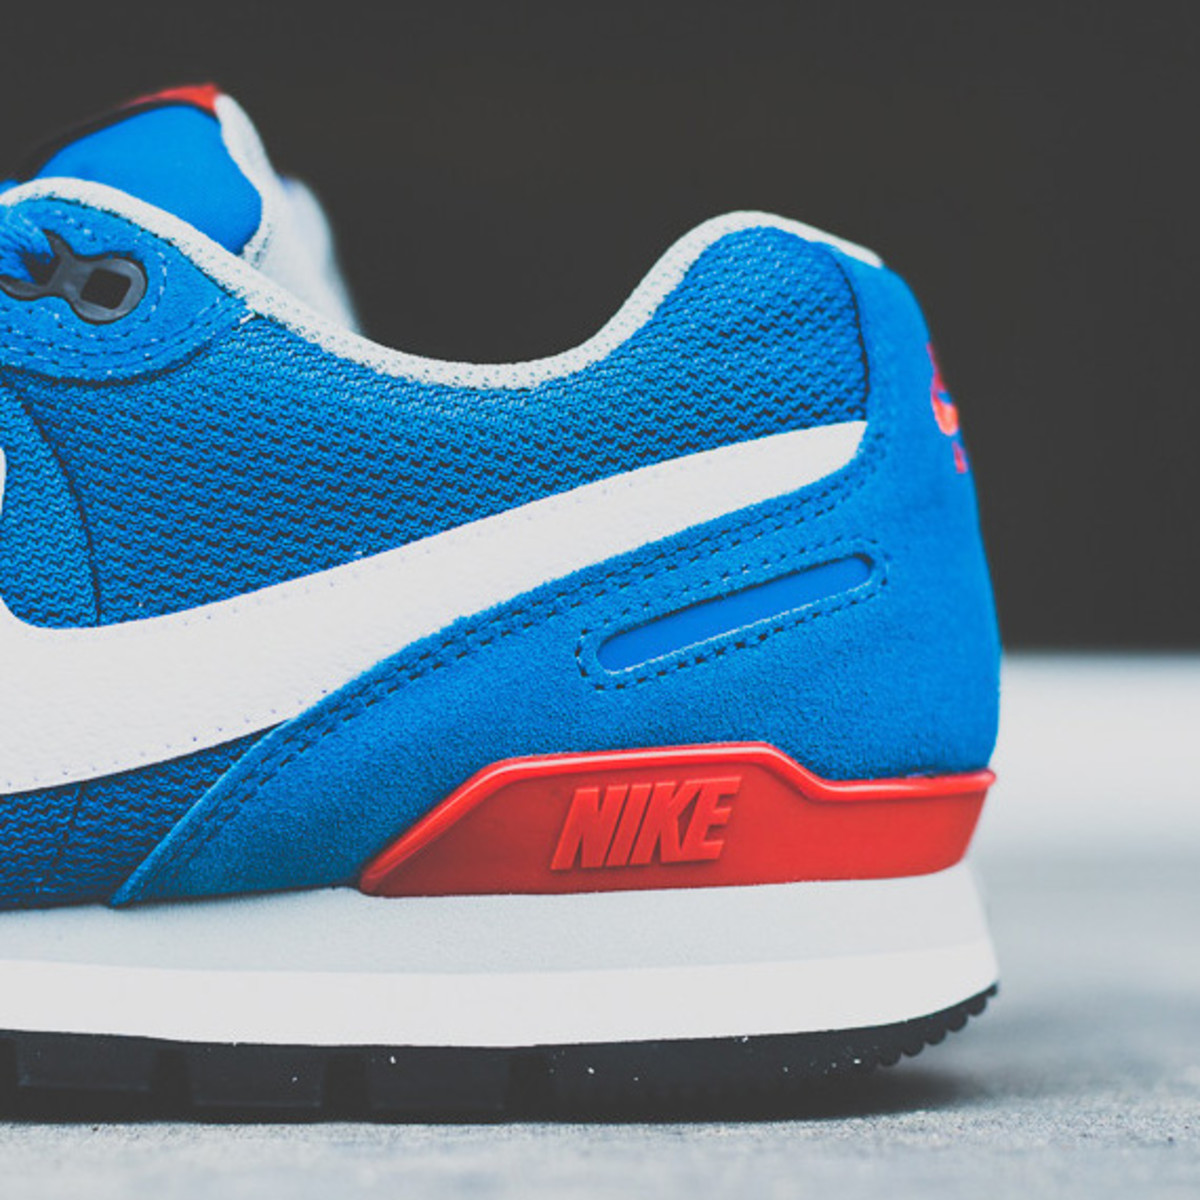 nike-air-waffle-trainer-military-blue-03a